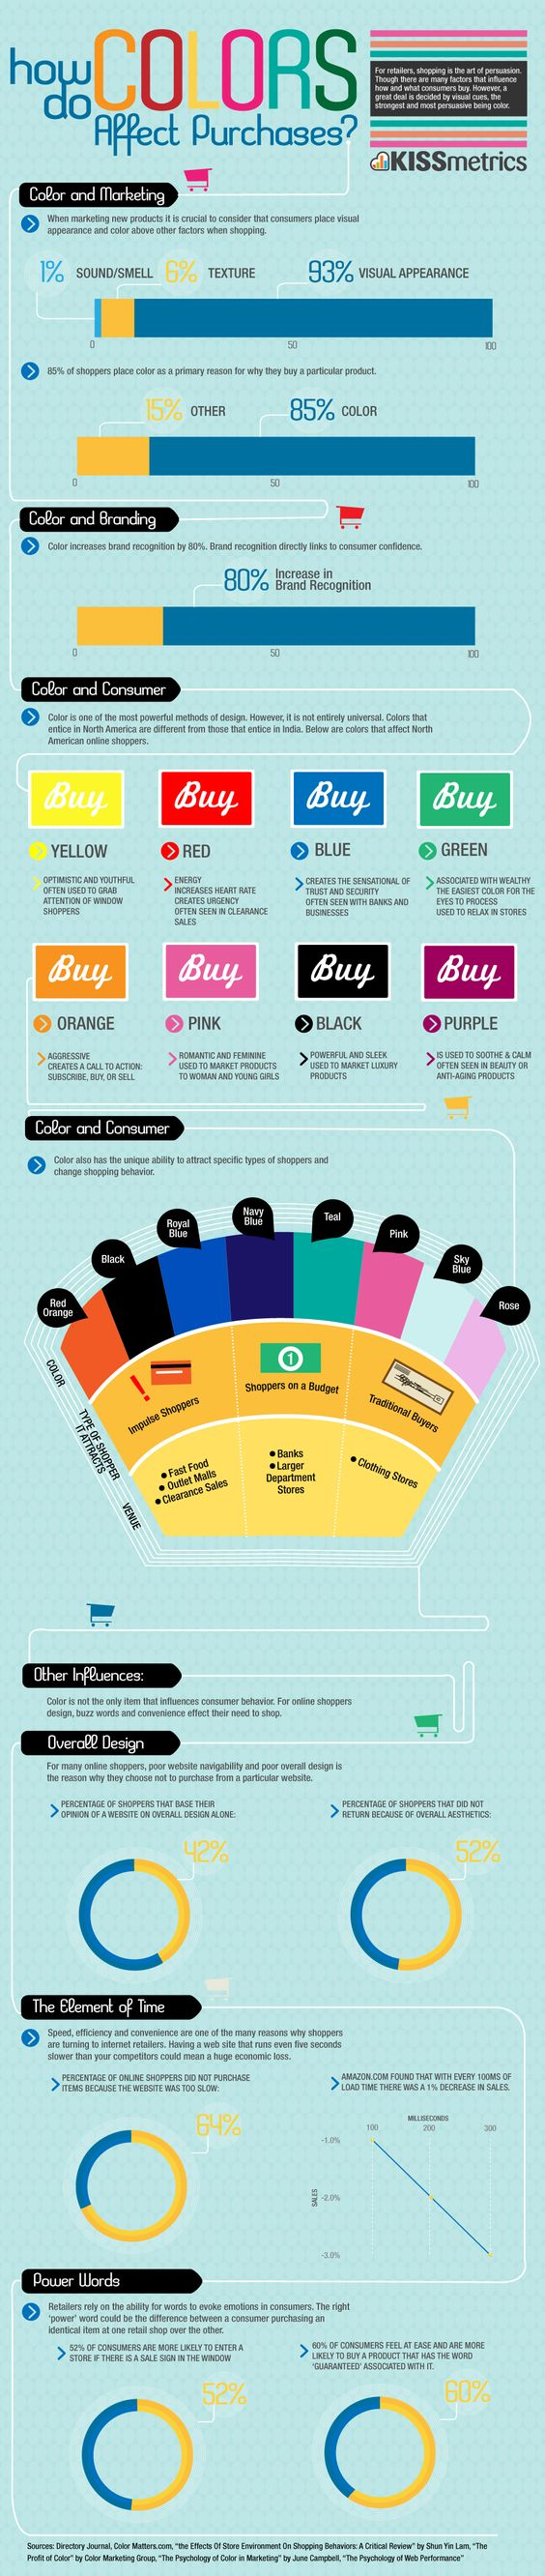 Colors in Marketing: Affect Purchases, Rose, Info Graphic, Color Marketing, Colours Affect, Purchases Infographic, Marketing Infographic, Color Purchase